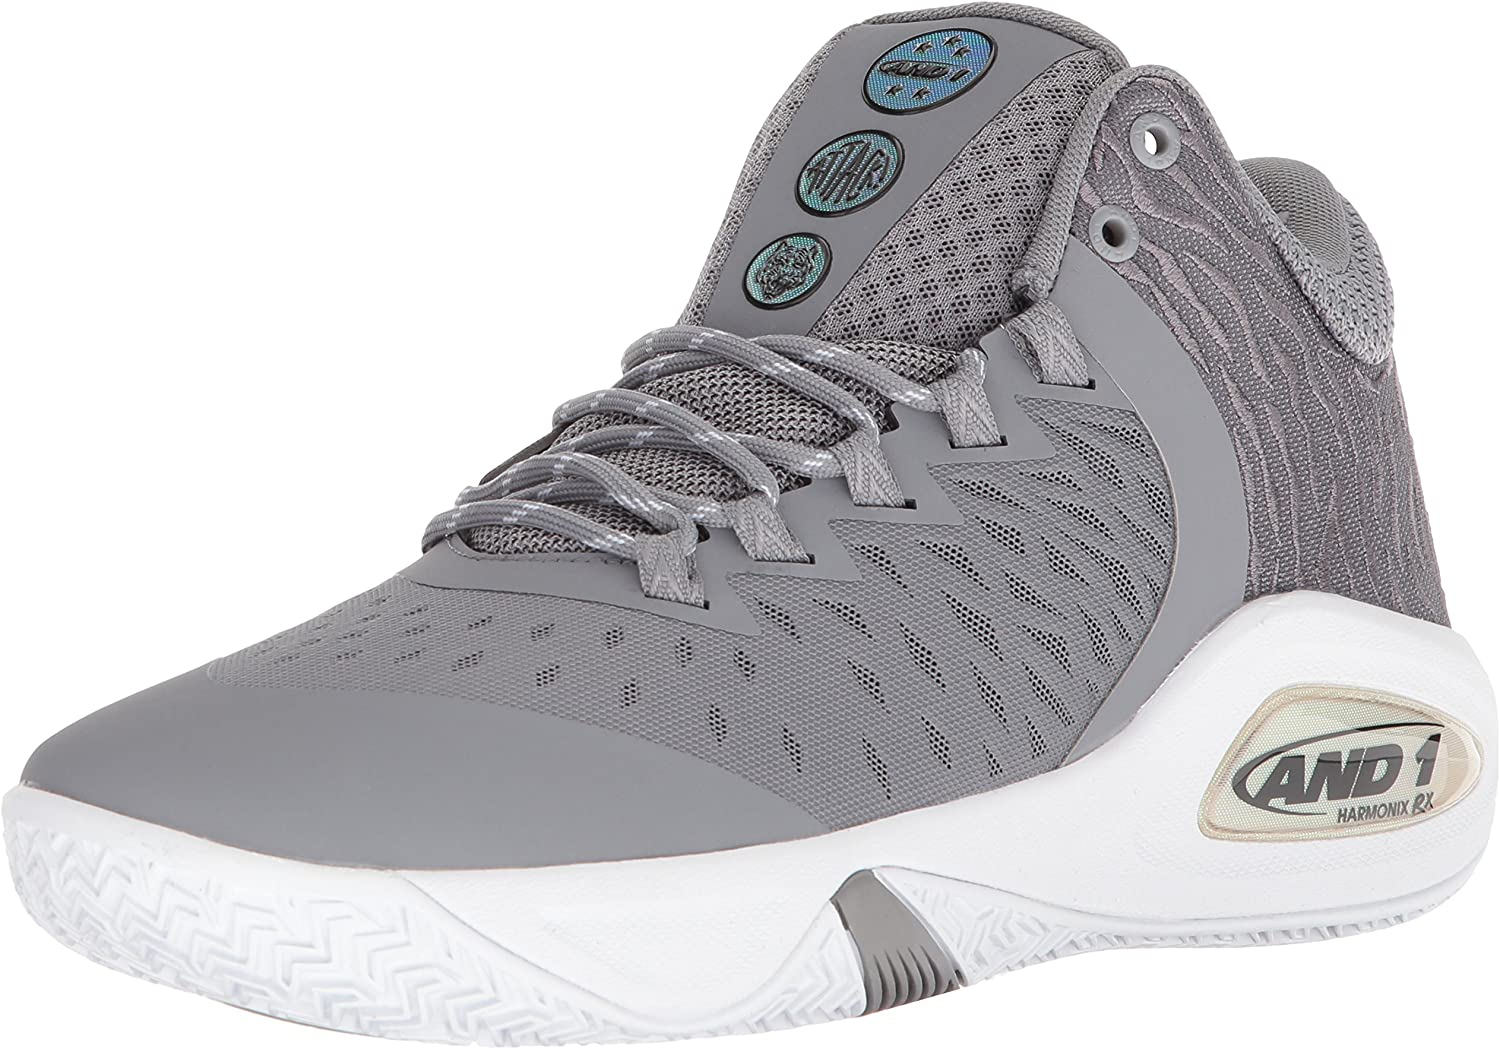 AND1 Men's Attack Mid Basketball shoes, Alloy Super Foil White, 11 UK